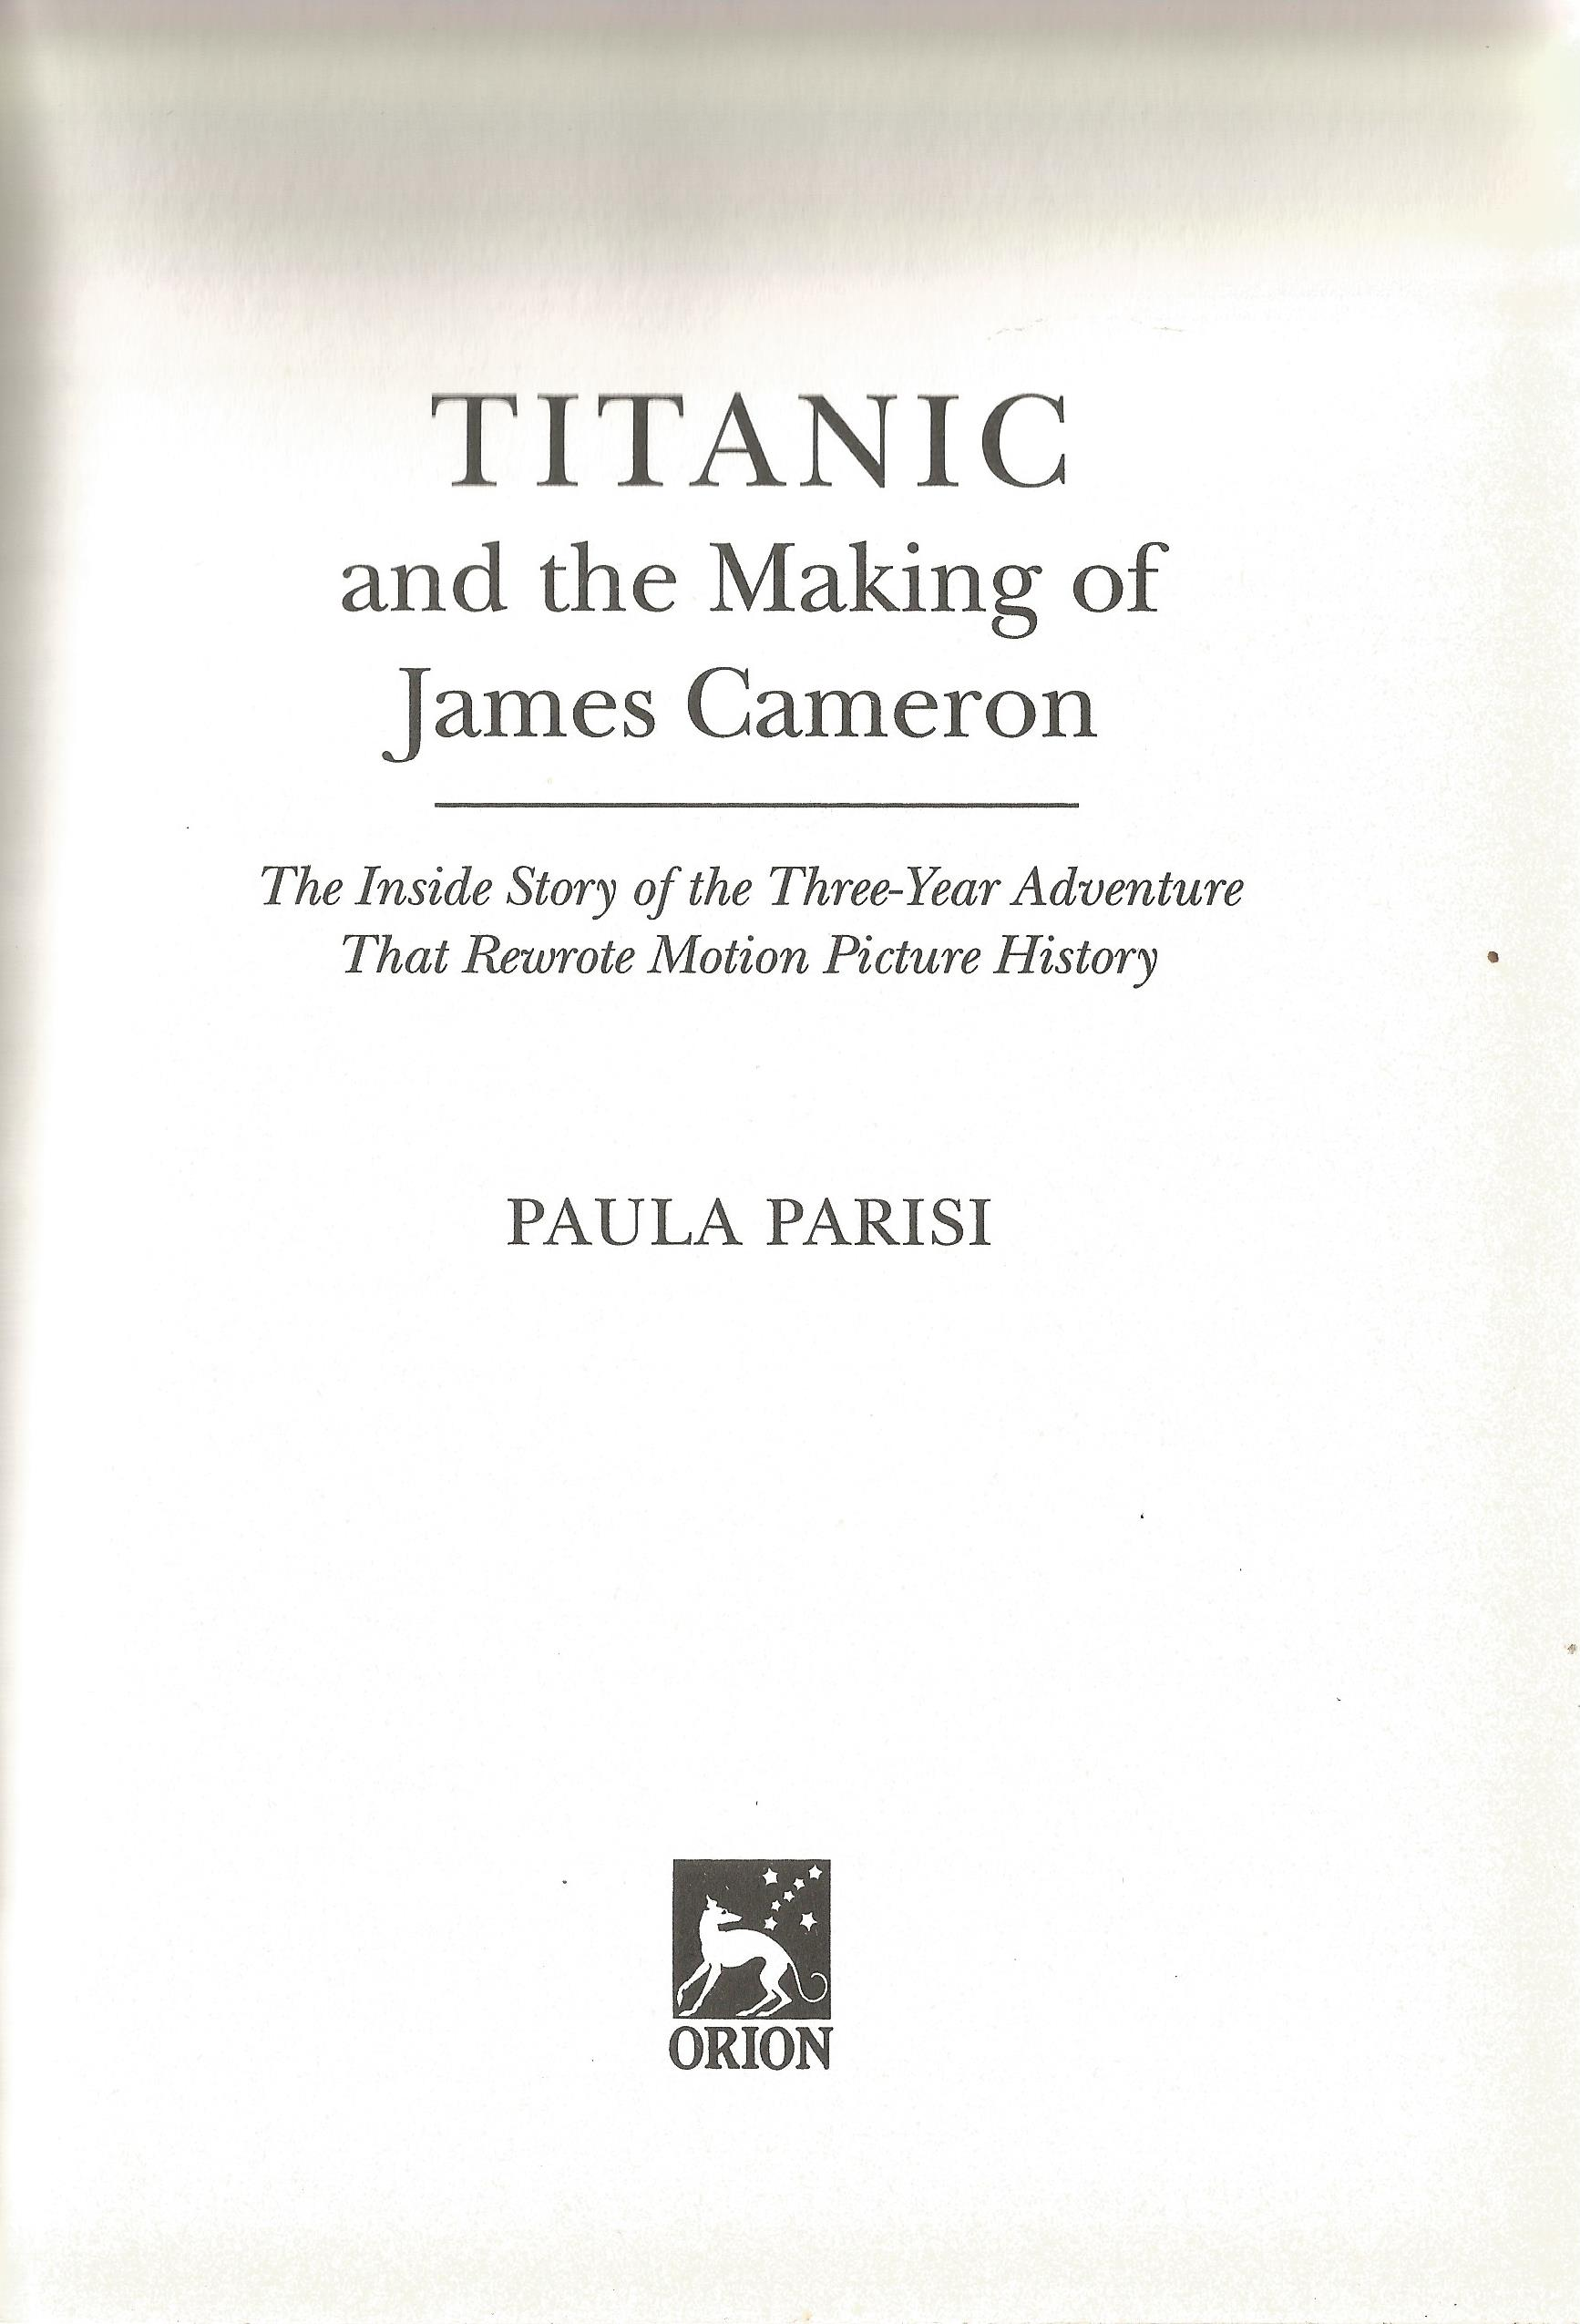 Making of the Titanic hardback book by Paula Parisi. We combine postage on multiple winning lots and - Image 2 of 2